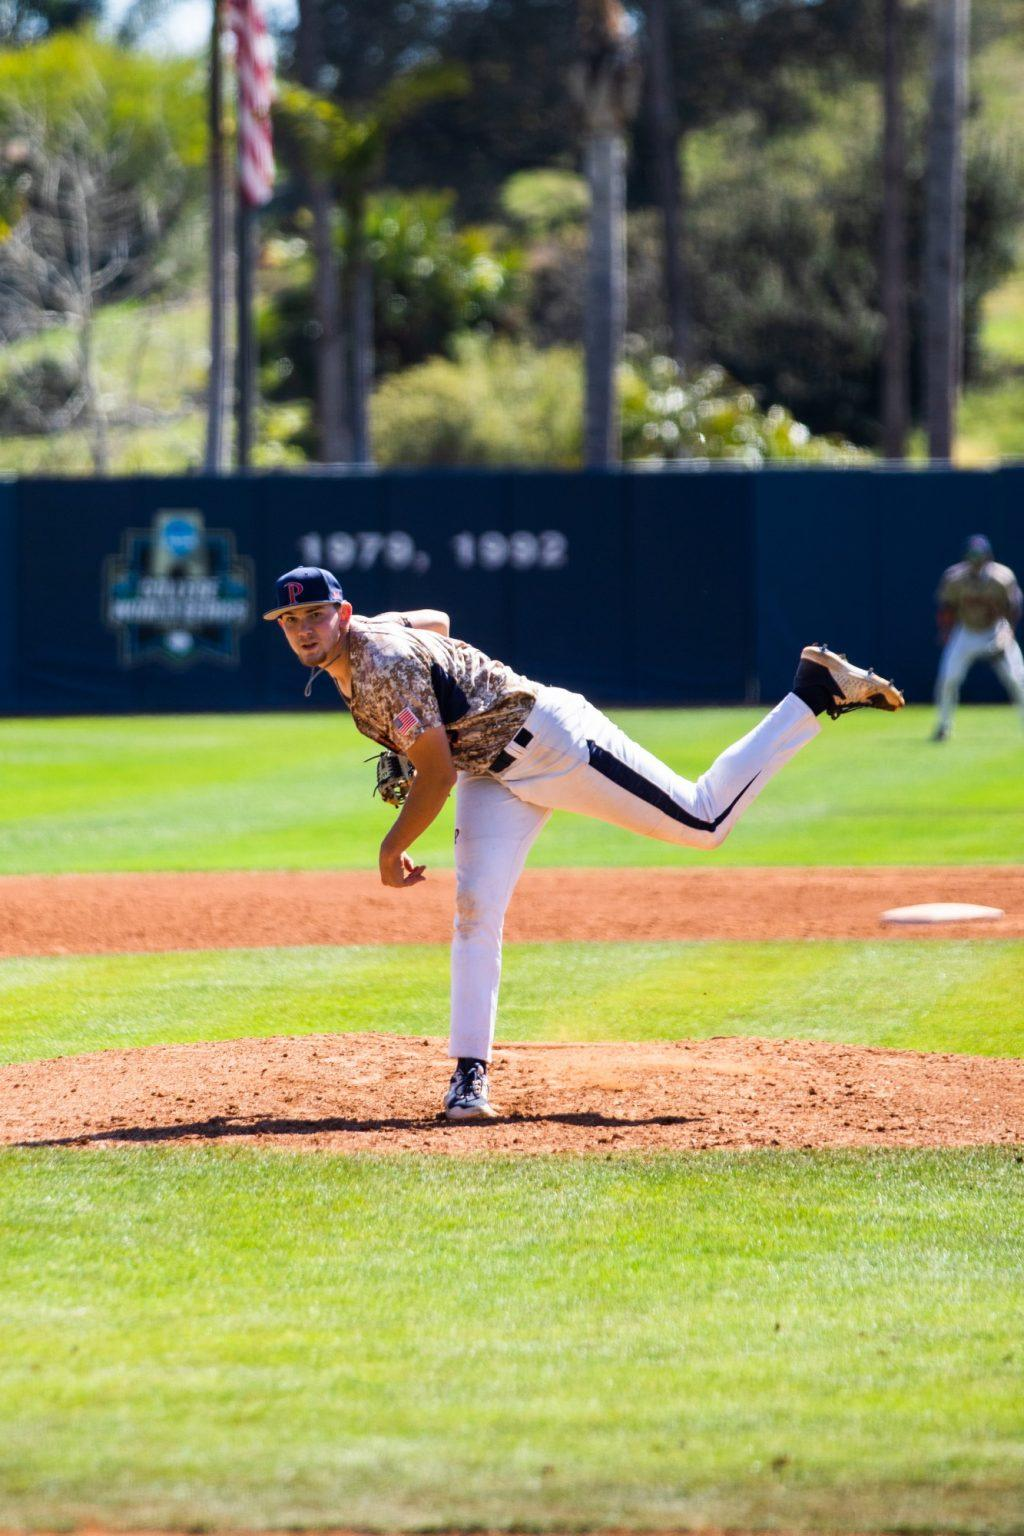 Sophomore left-hander Nathan Diamond completes his follow through Saturday afternoon at Eddy D. Field Stadium in Malibu. After four scoreless innings in a 7-2 Waves win, Diamond holds an even 3.00 earned run average on the season.